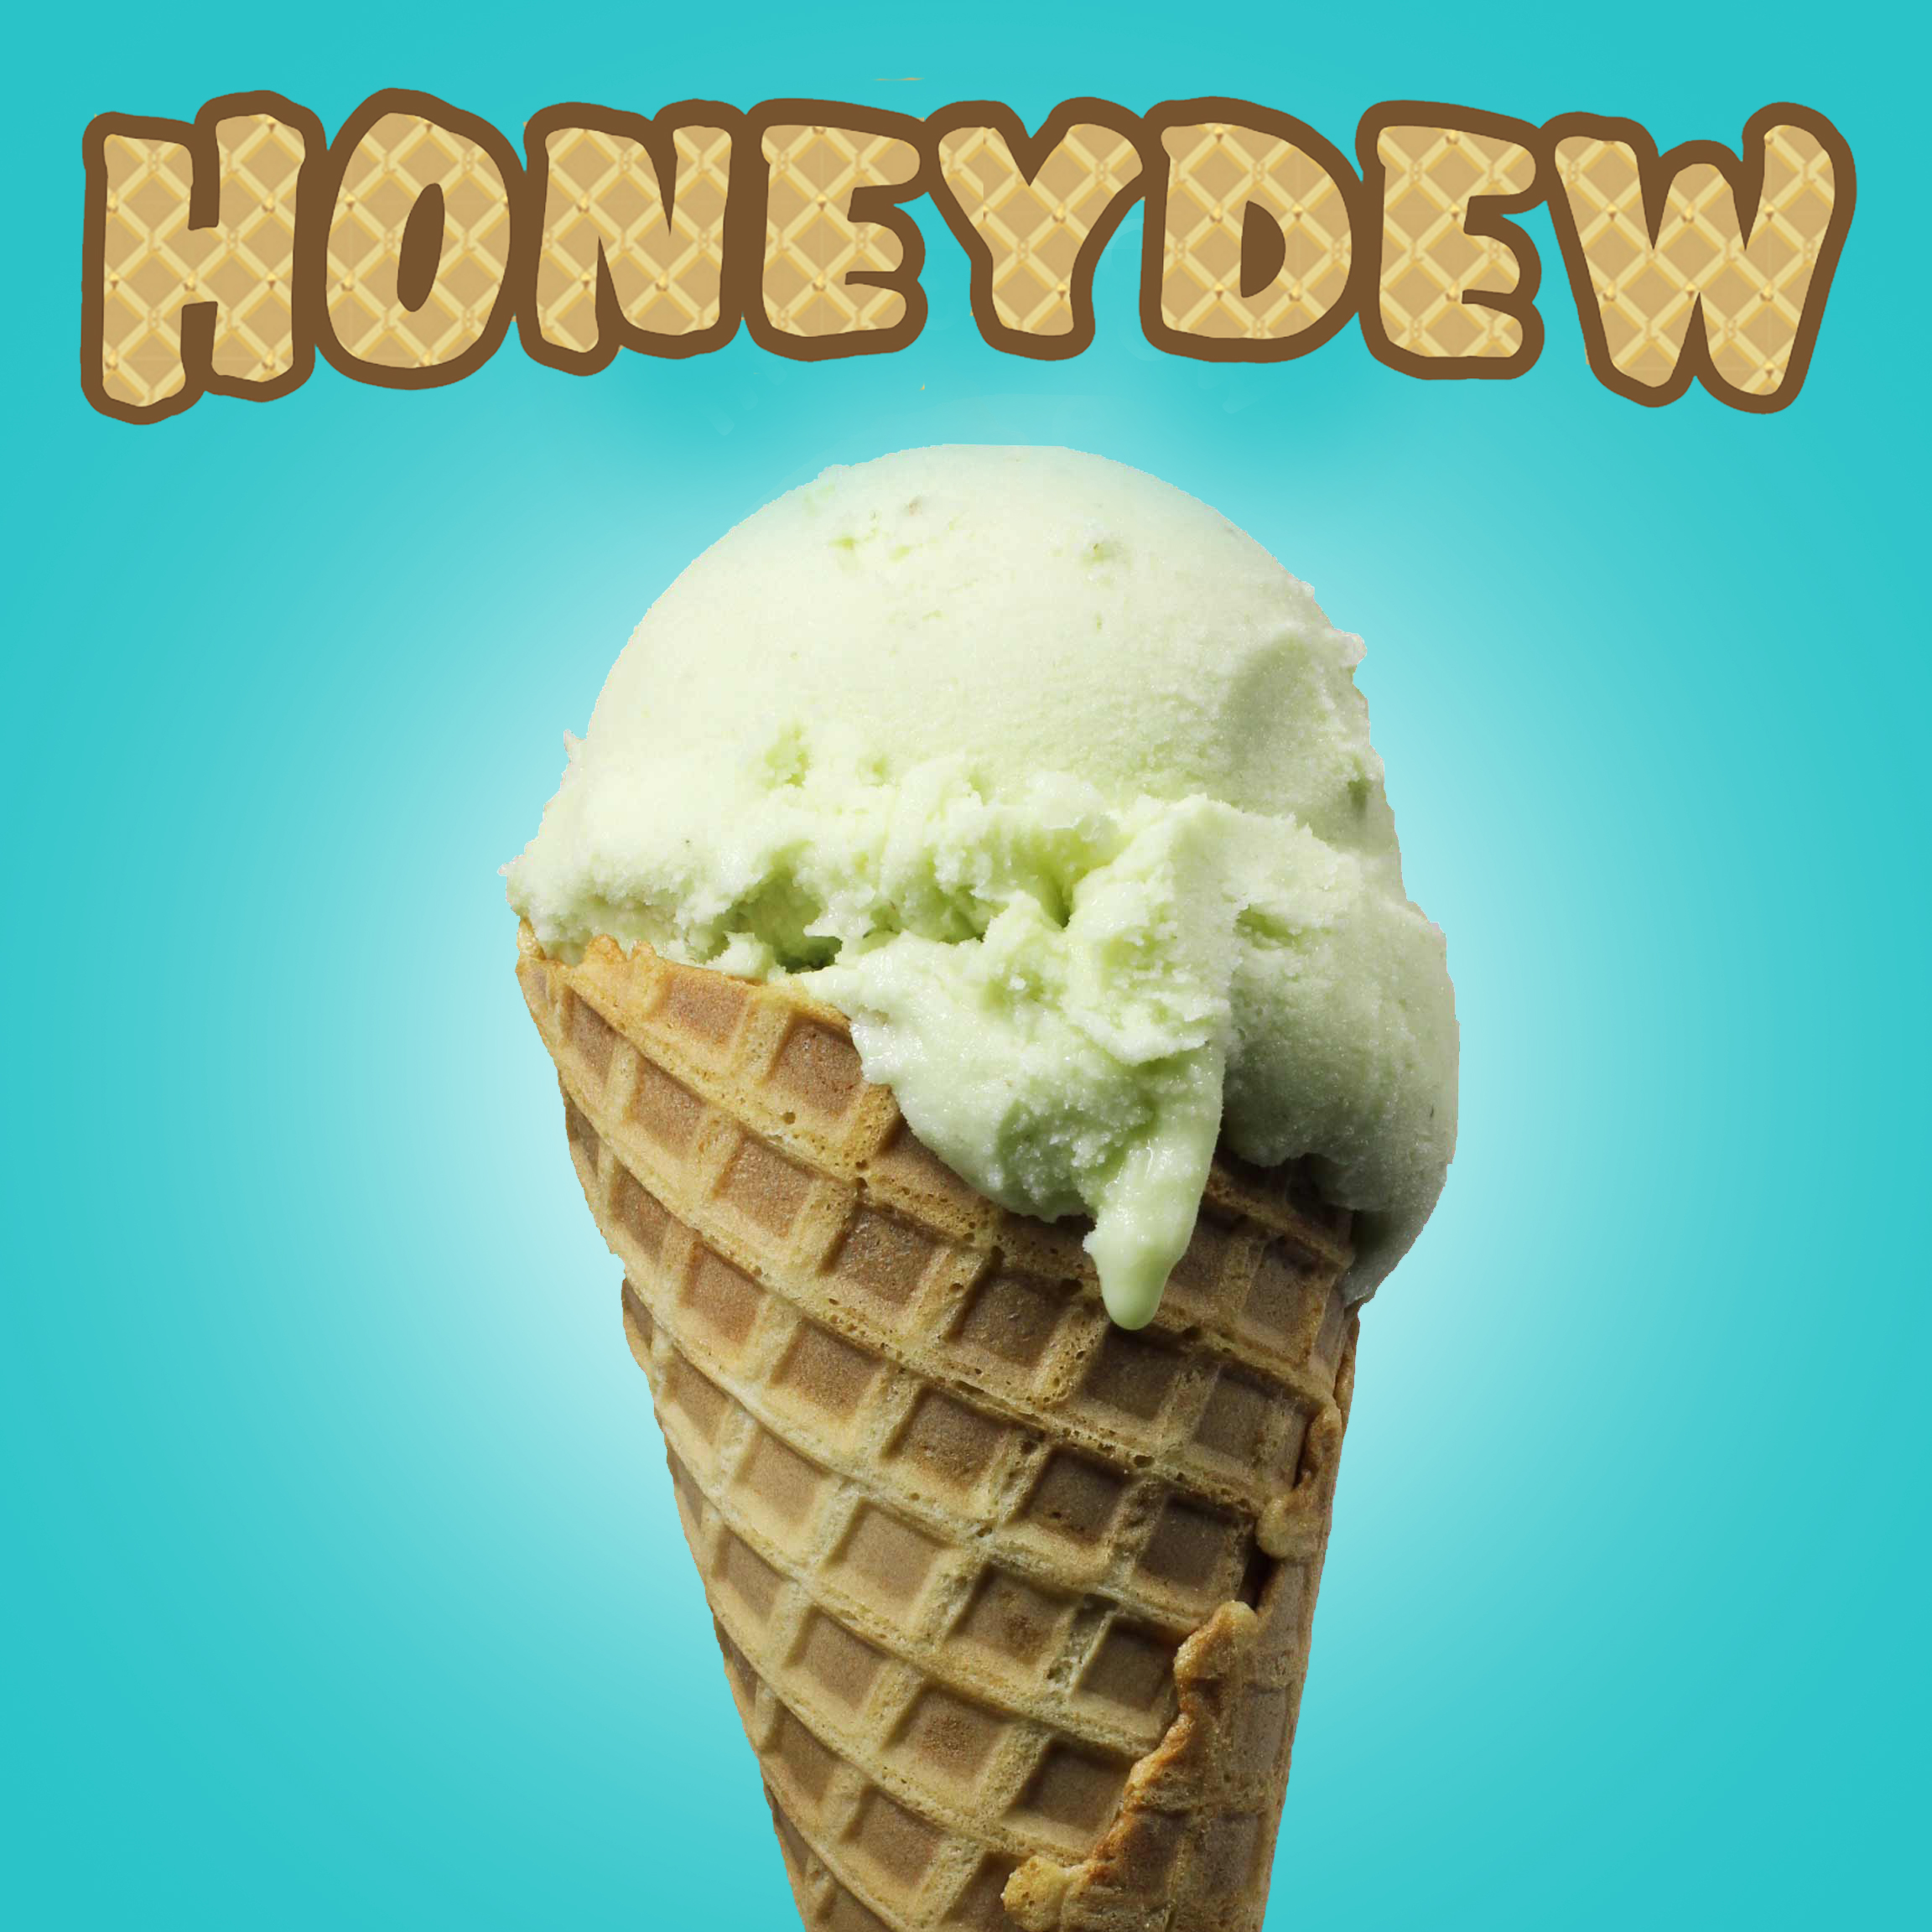 Honeydew melon (gluten and nut-free)